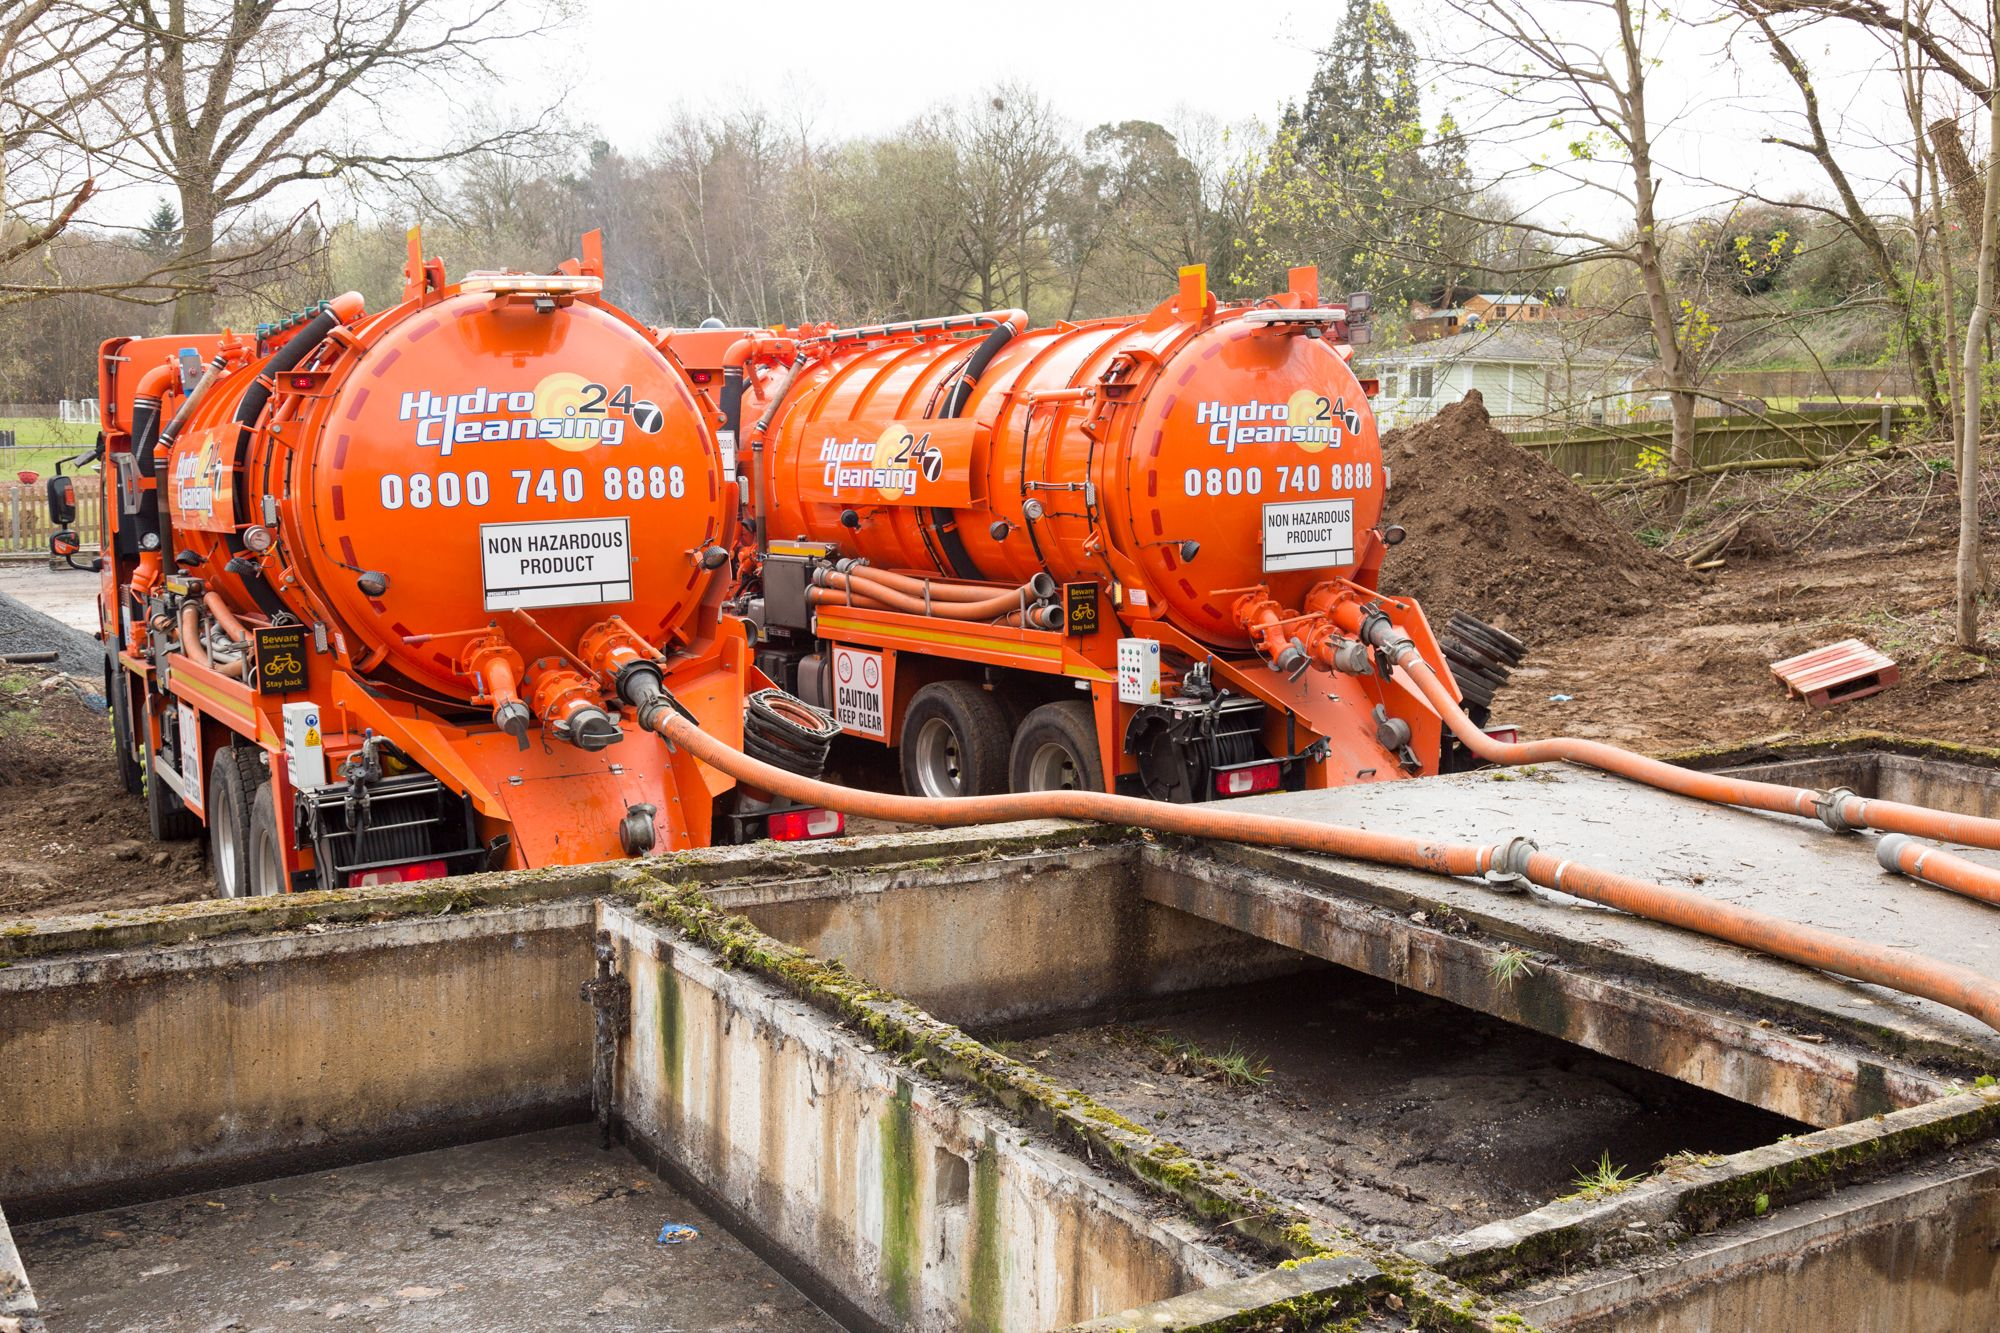 Cess empty double capacity half the time septic tank